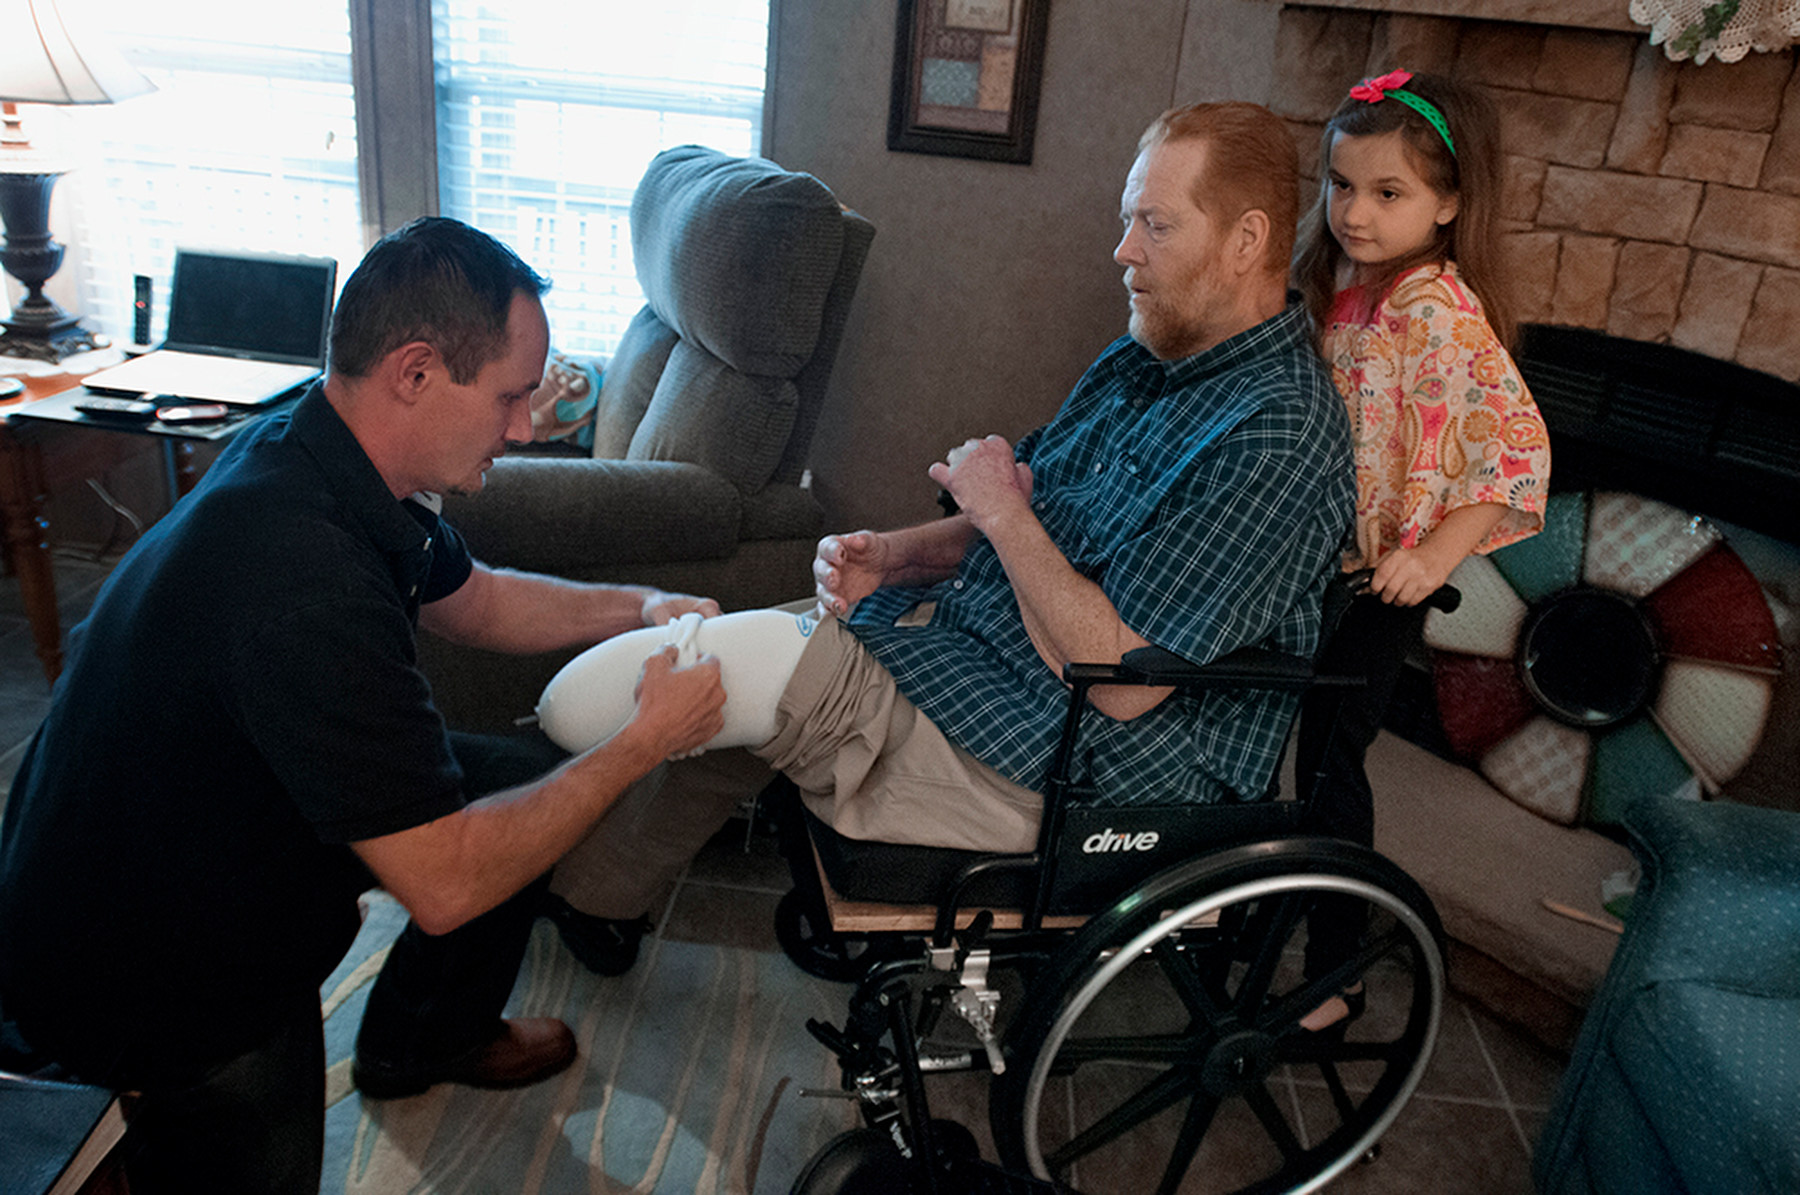 Third Place | Multiple PhotosMike Spencer, The Wilmington Star-NewsMolly Spearman, 7, stands on her fathers wheel chair while Tom Spearman helps his father, Lee, with his with his prosthetic legs at their home in Ingold, N.C., Sunday, March 16, 2014. Lee Spearman was hospitalized in December of 2013 with an infection that was ravaging his body and almost took his life and resulted in having both of his legs amputated below the knee and all the fingers on his left hand.